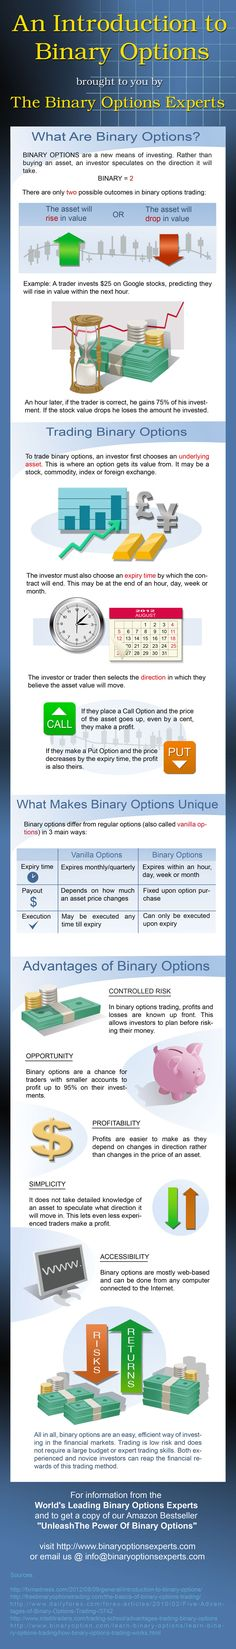 Binary options info graphic template live binary trades options